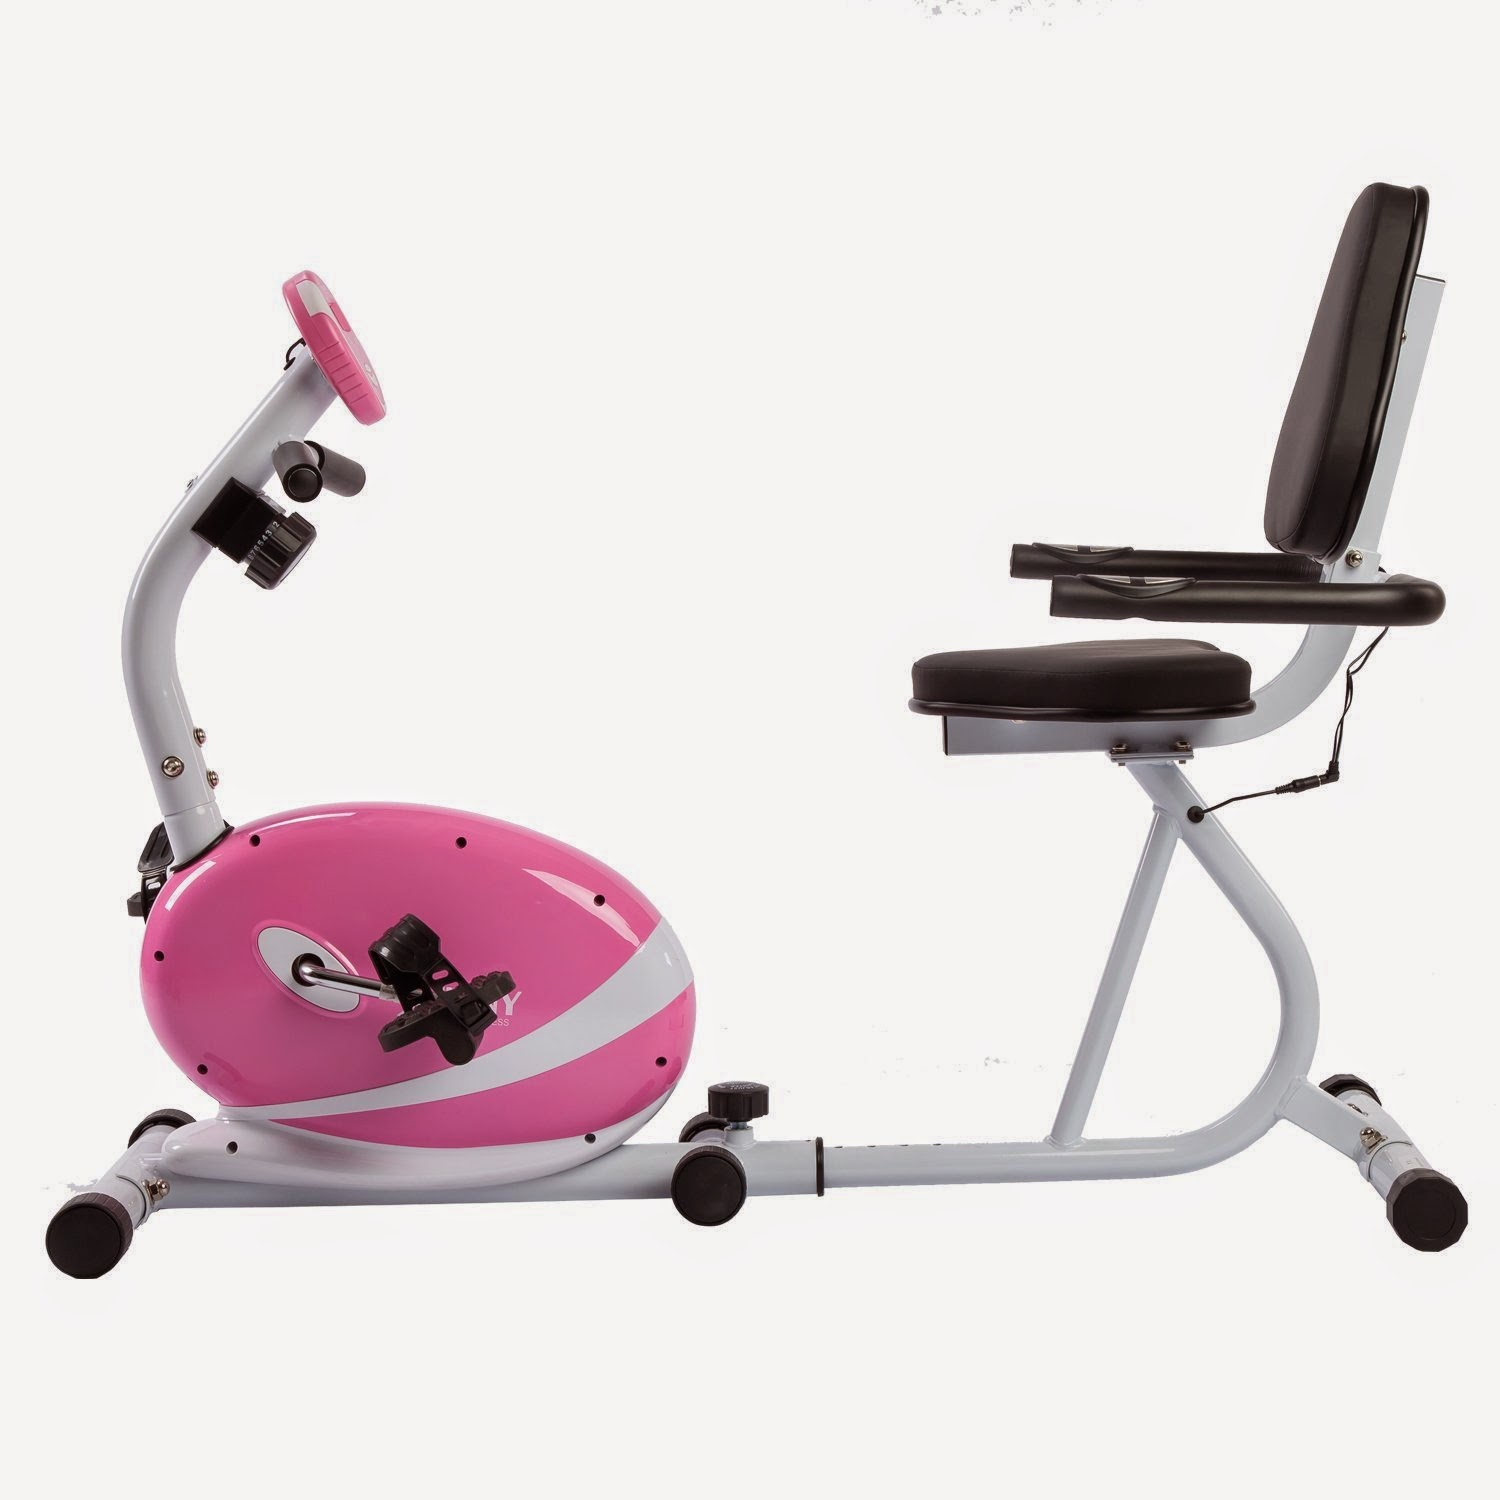 Sunny Health & Fitness Pink Magnetic Recumbent Bike, review features